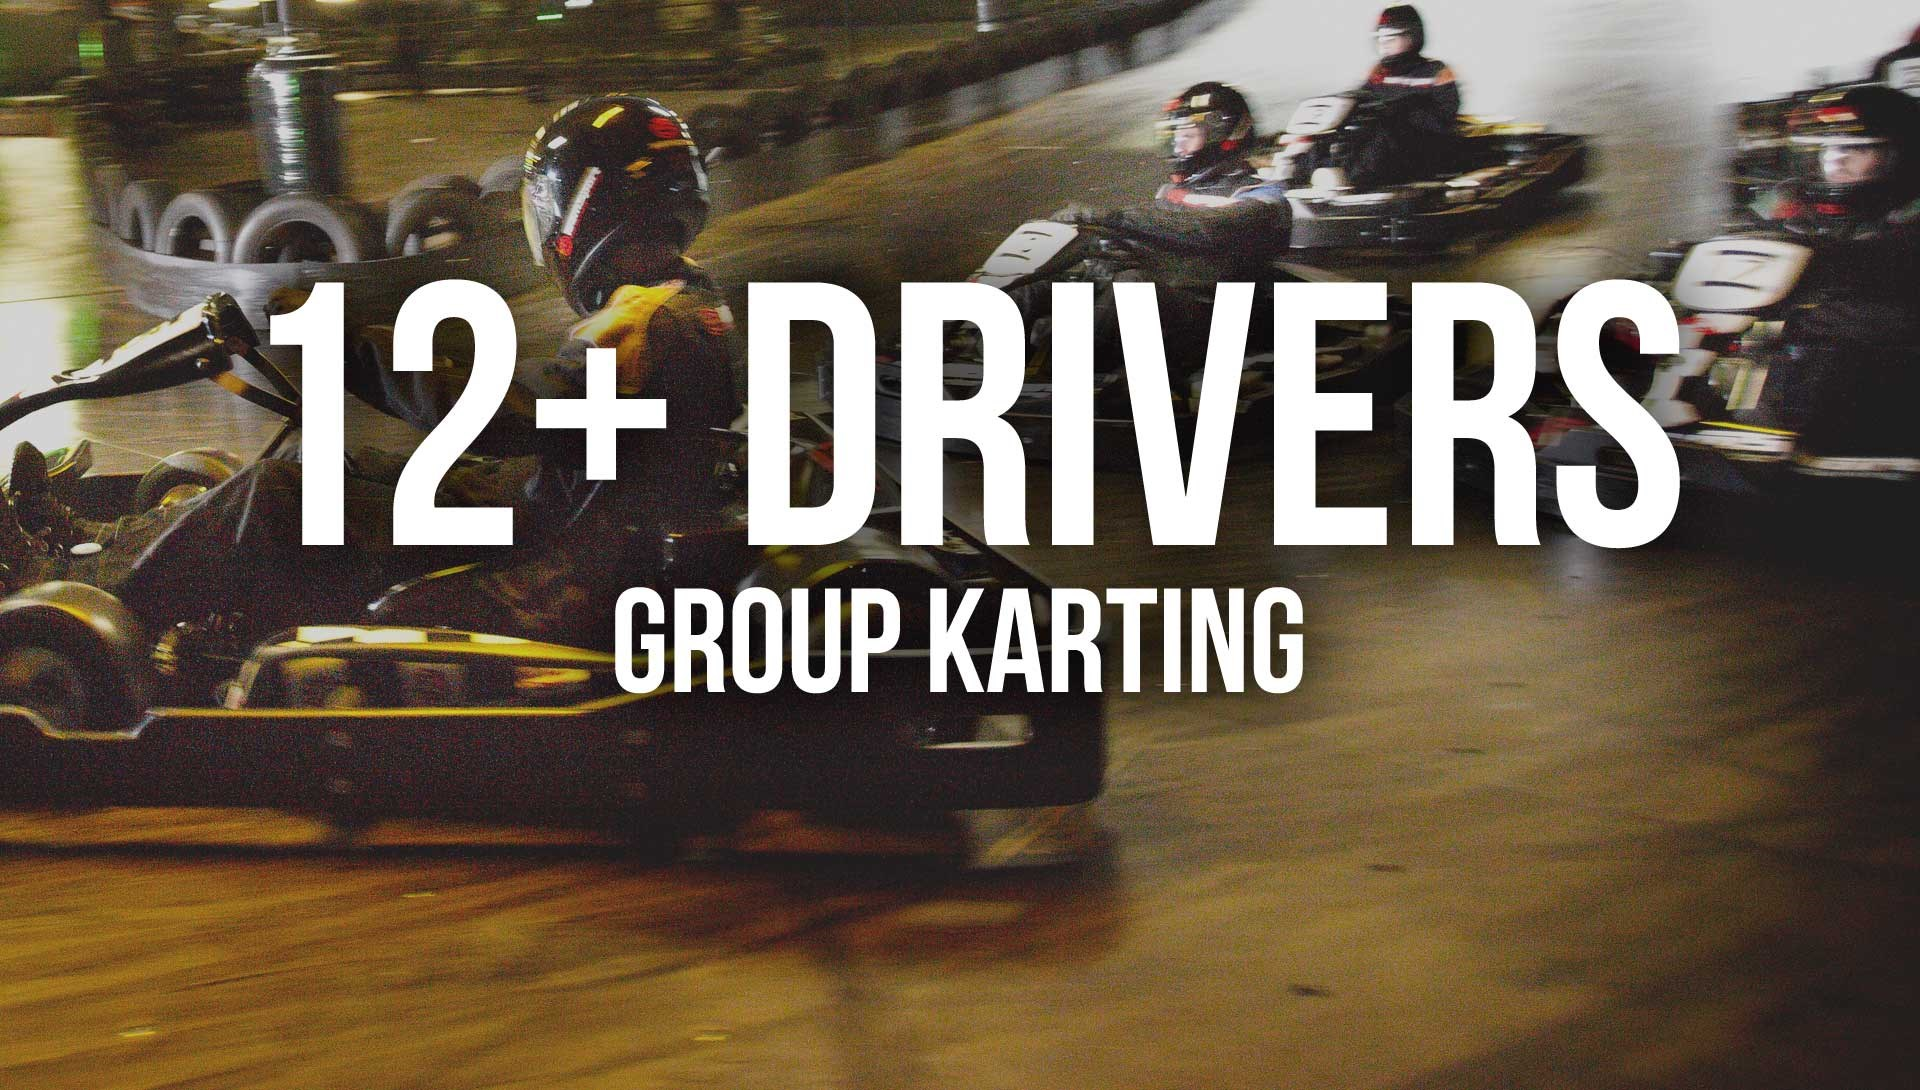 Indoor Go Karting  Events Brighton - 12+ Drivers